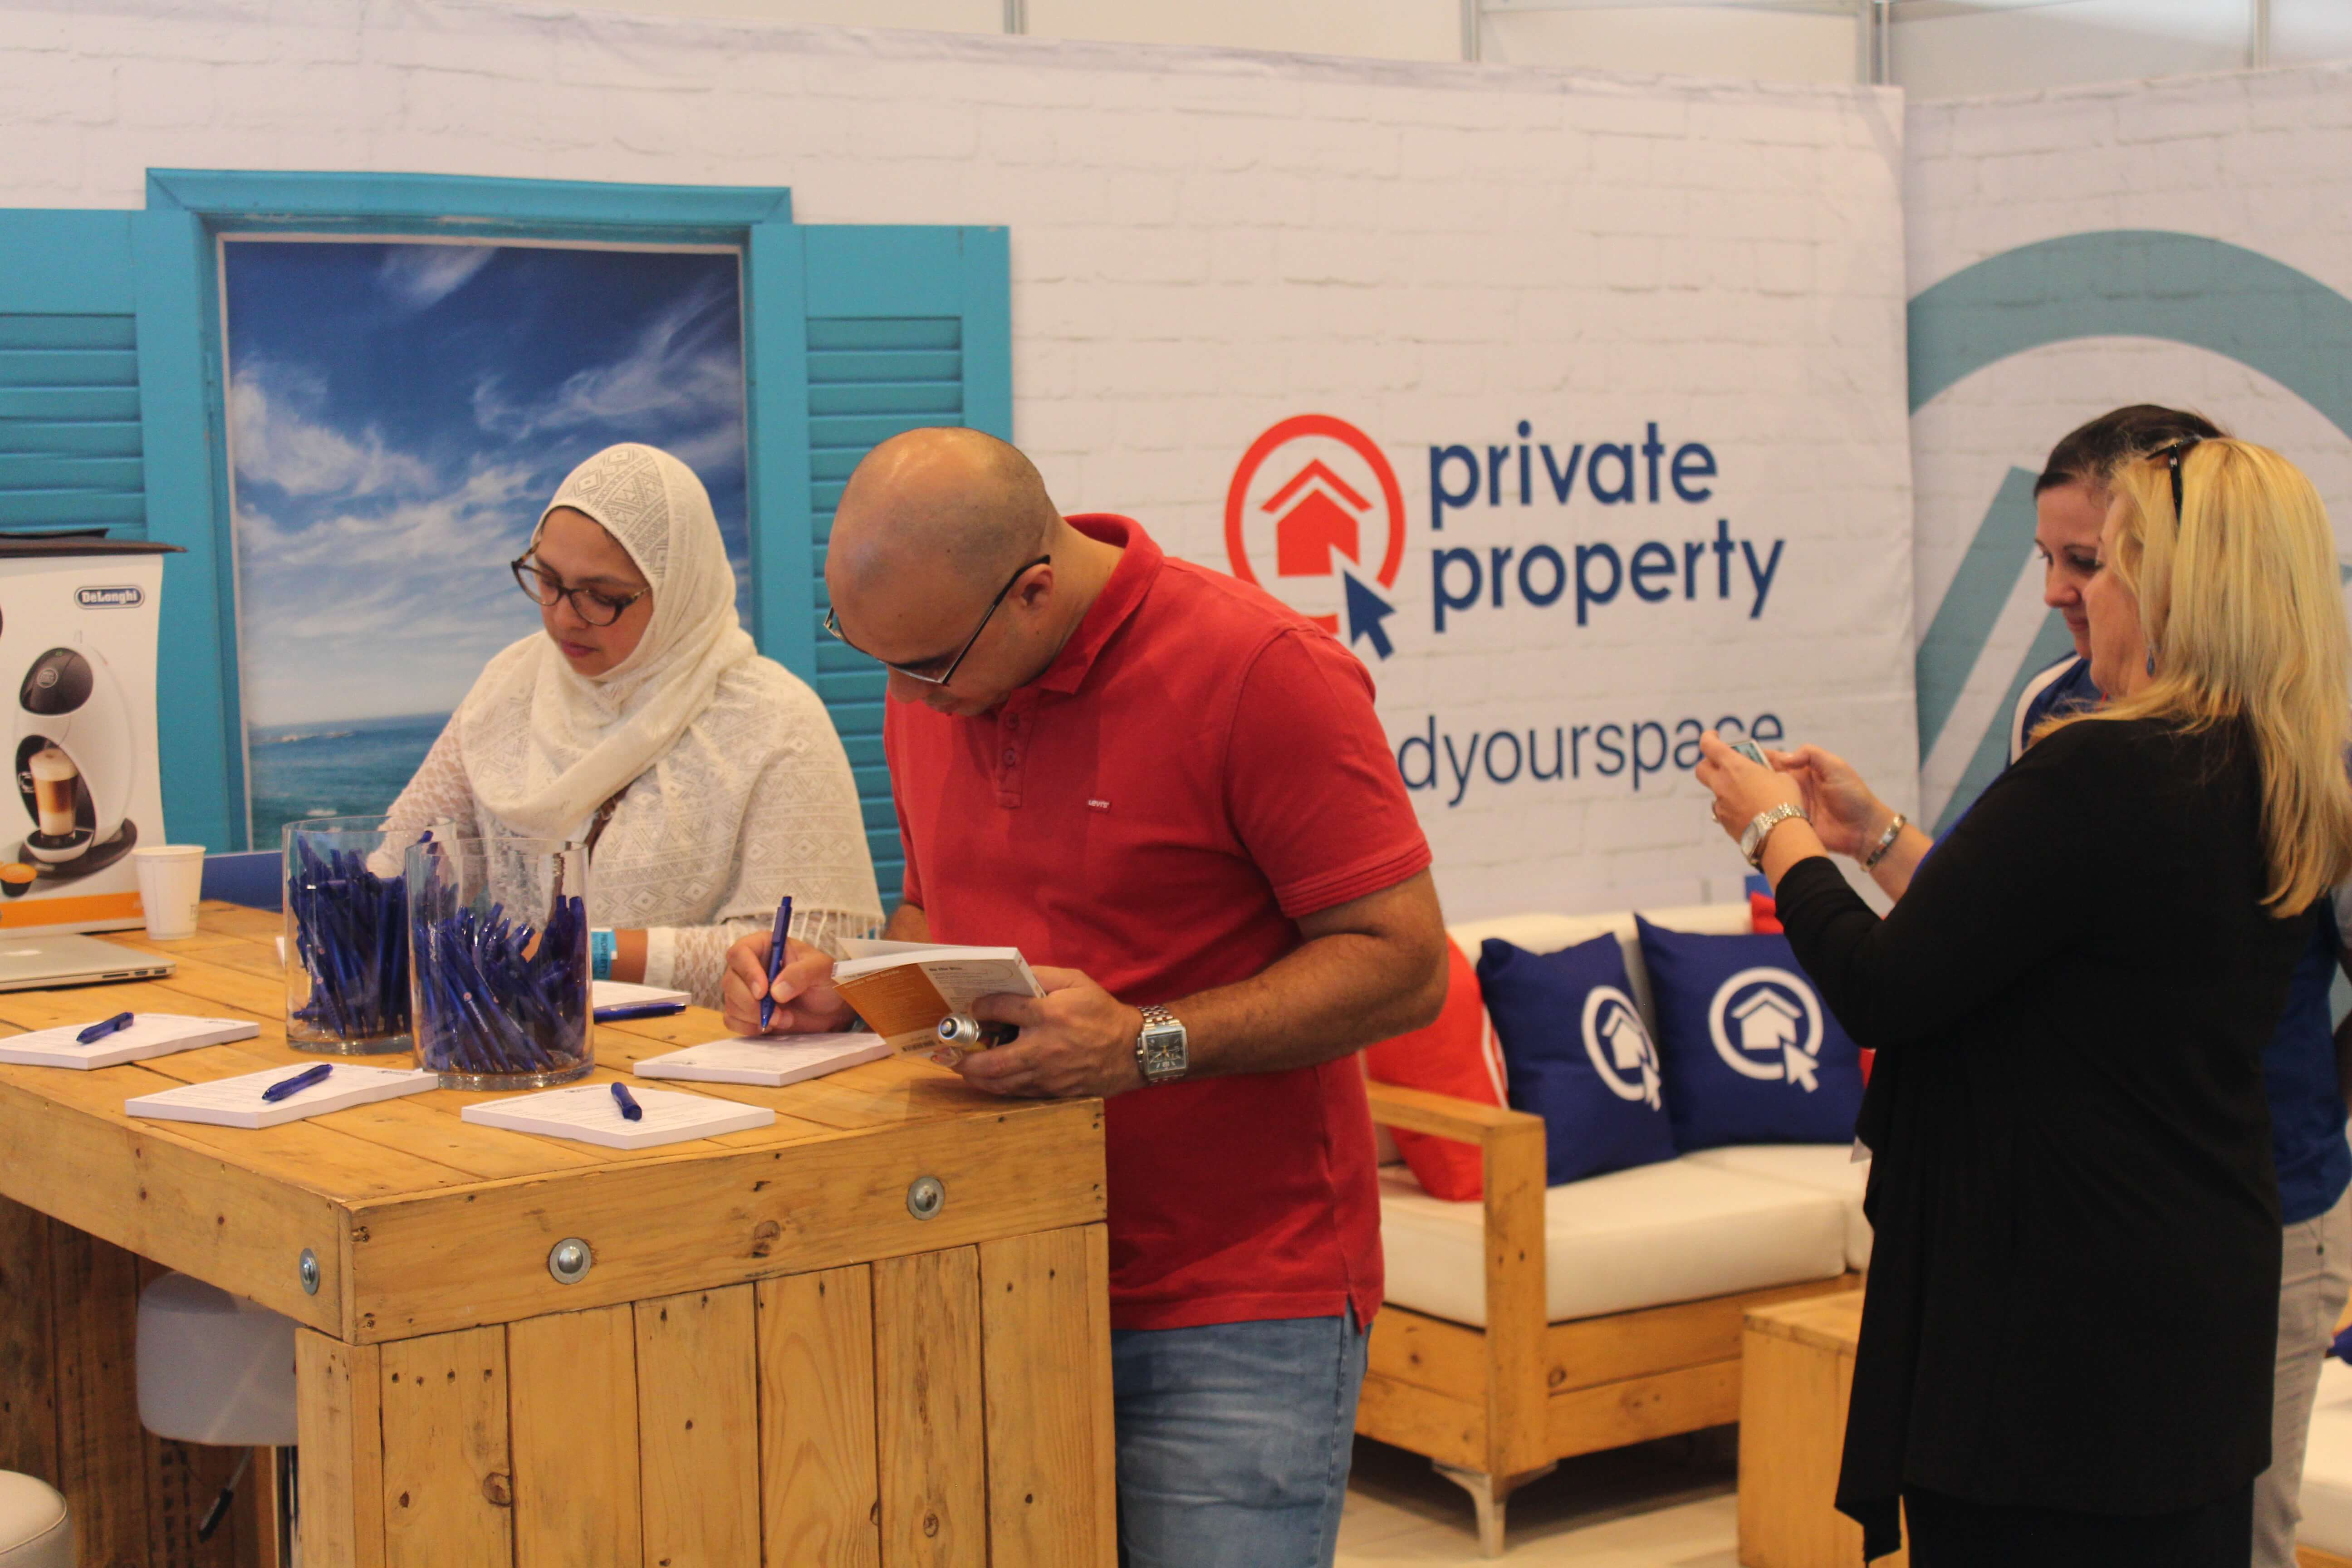 The Hugely successful Property Buyer Show arrives in Durban